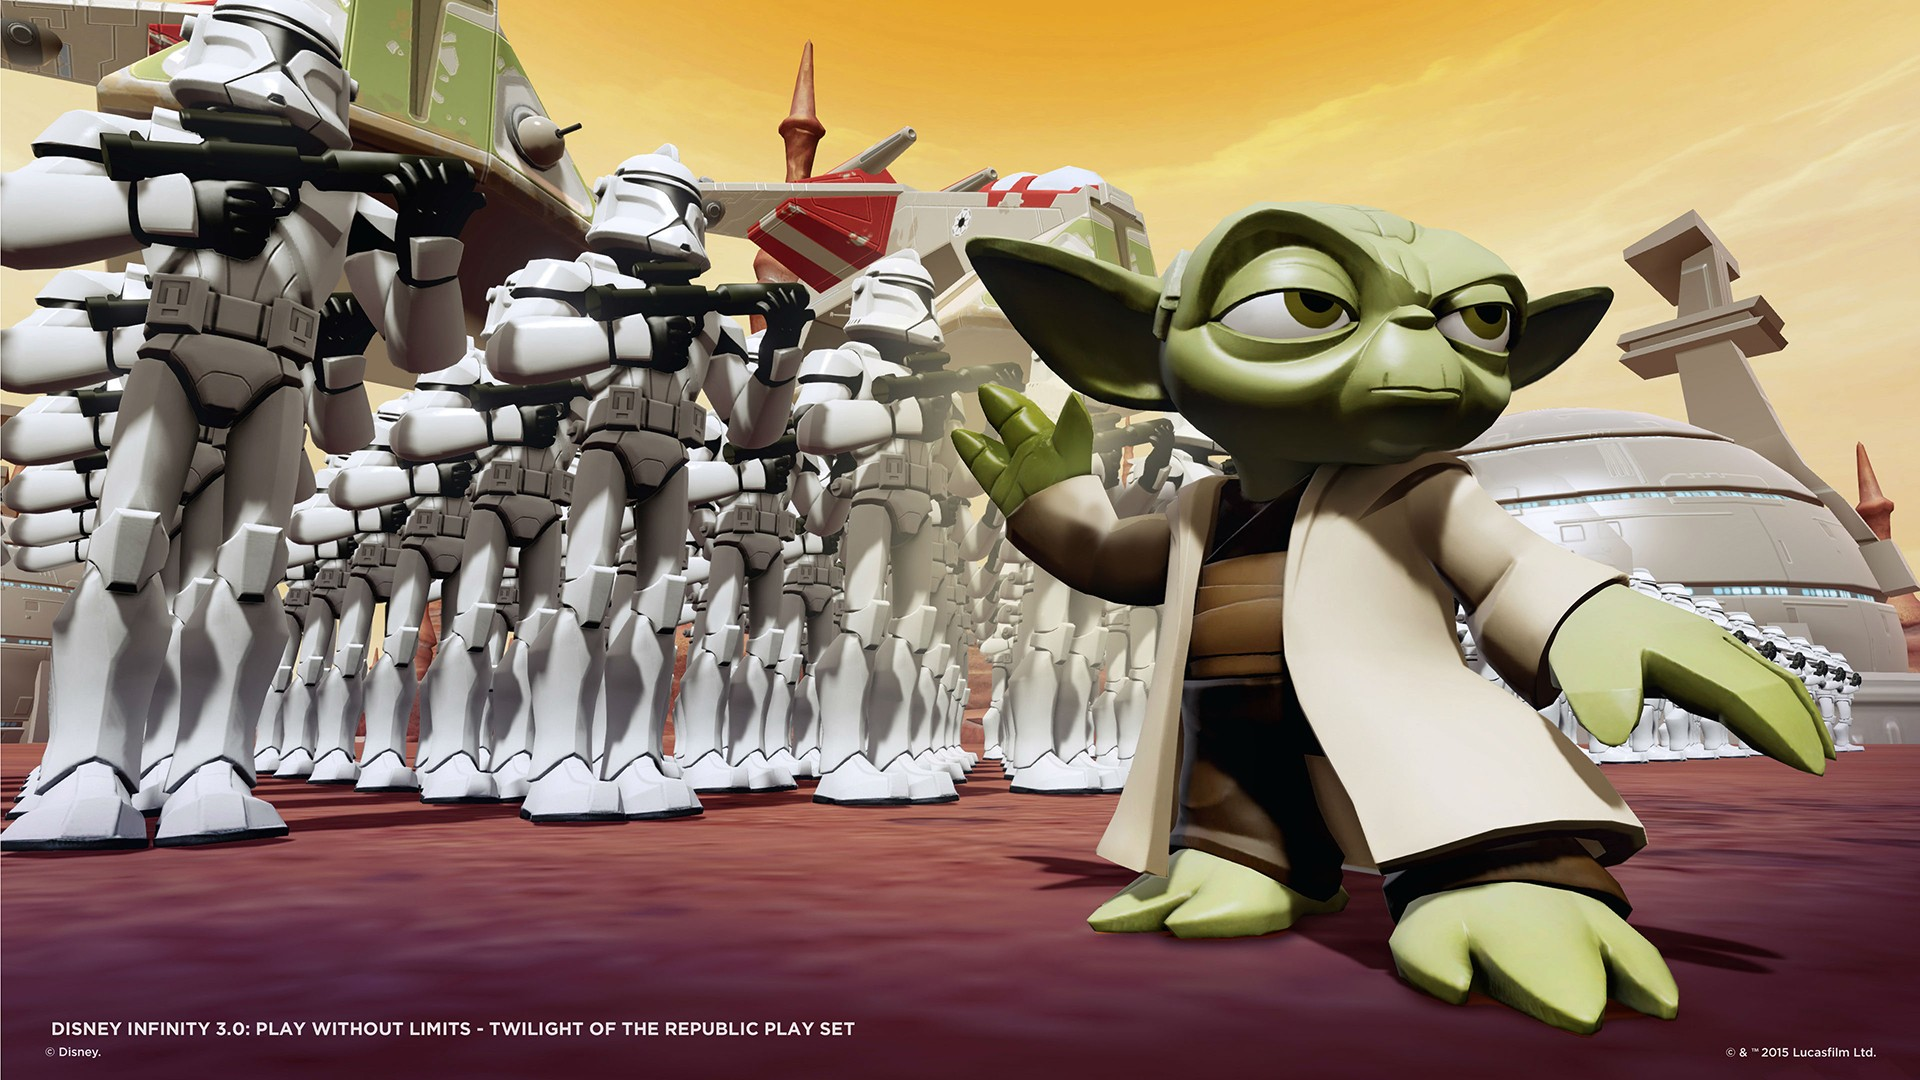 Star-Wars-Twilight-of-the-Republic-for-Disney-Infinity-3-0-Images-Show-Exploration-and-Combat-482355-3